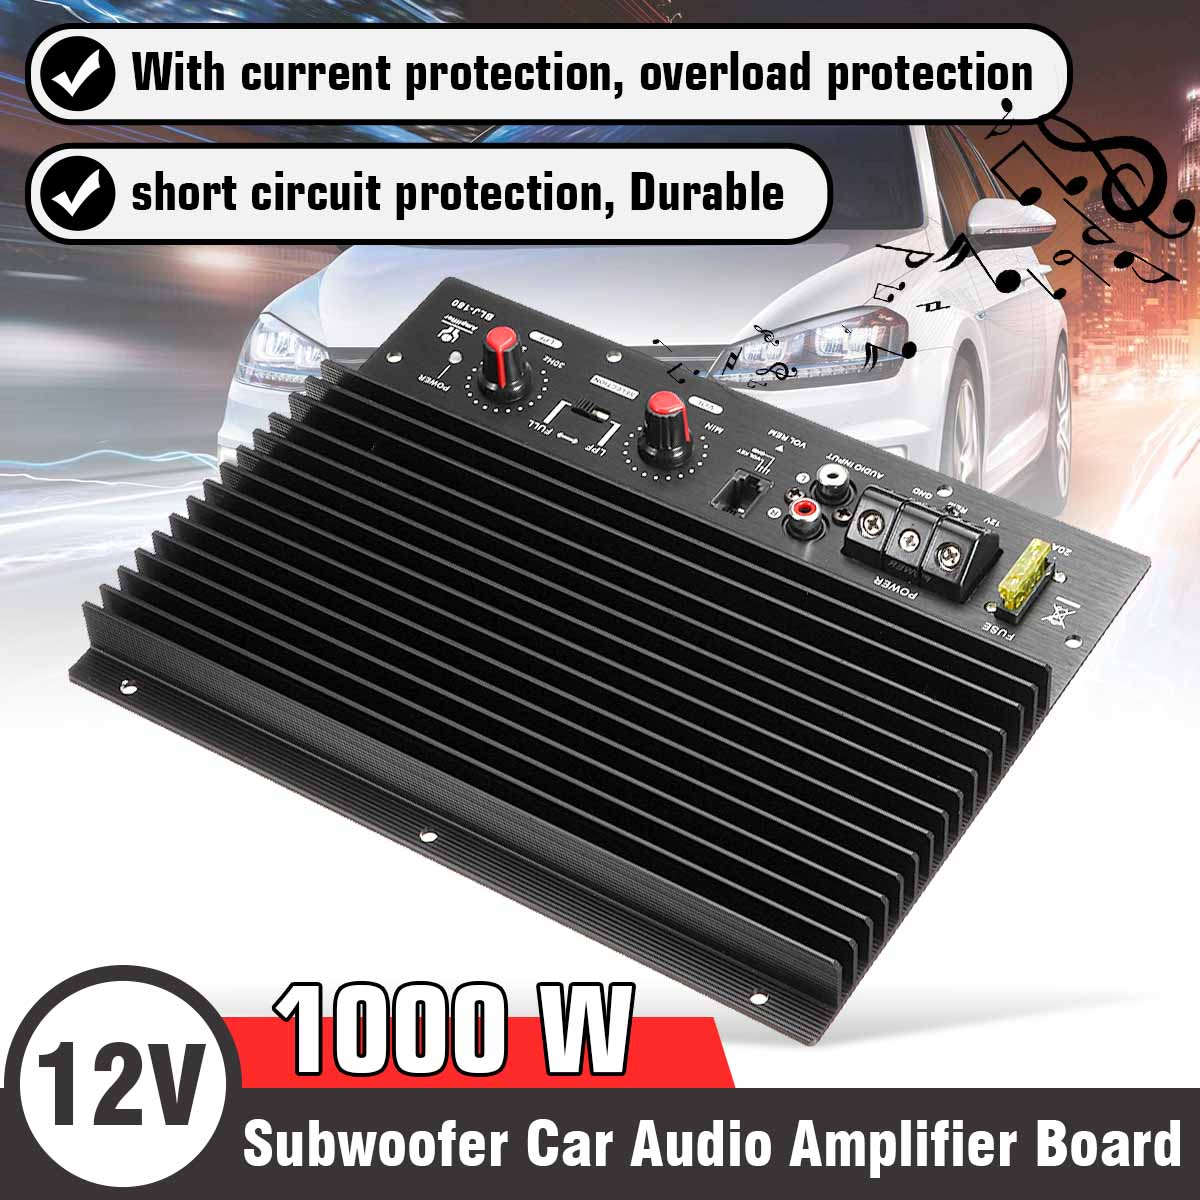 12V 1000W <font><b>Car</b></font> <font><b>Audio</b></font> <font><b>Amplifier</b></font> Board Subwoofer <font><b>Amplifier</b></font> <font><b>DIY</b></font> Amp Board Speaker System <font><b>Car</b></font> Player image